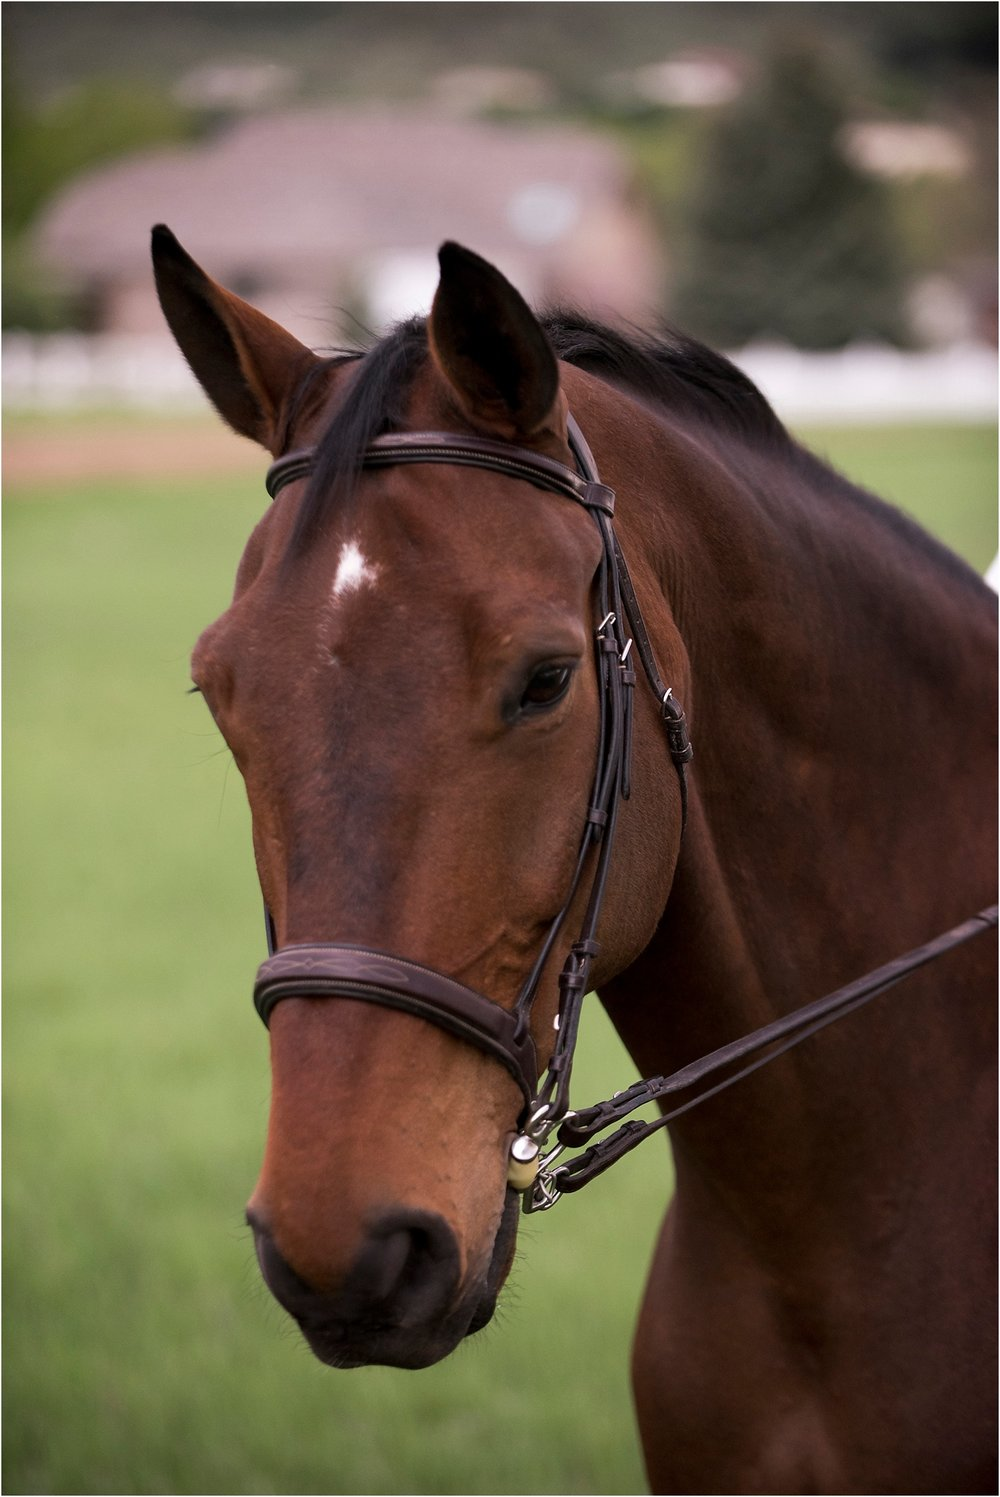 Horse_Photography_Equine_Equestrian_Photos_Portrait_Warmblood_005.jpg